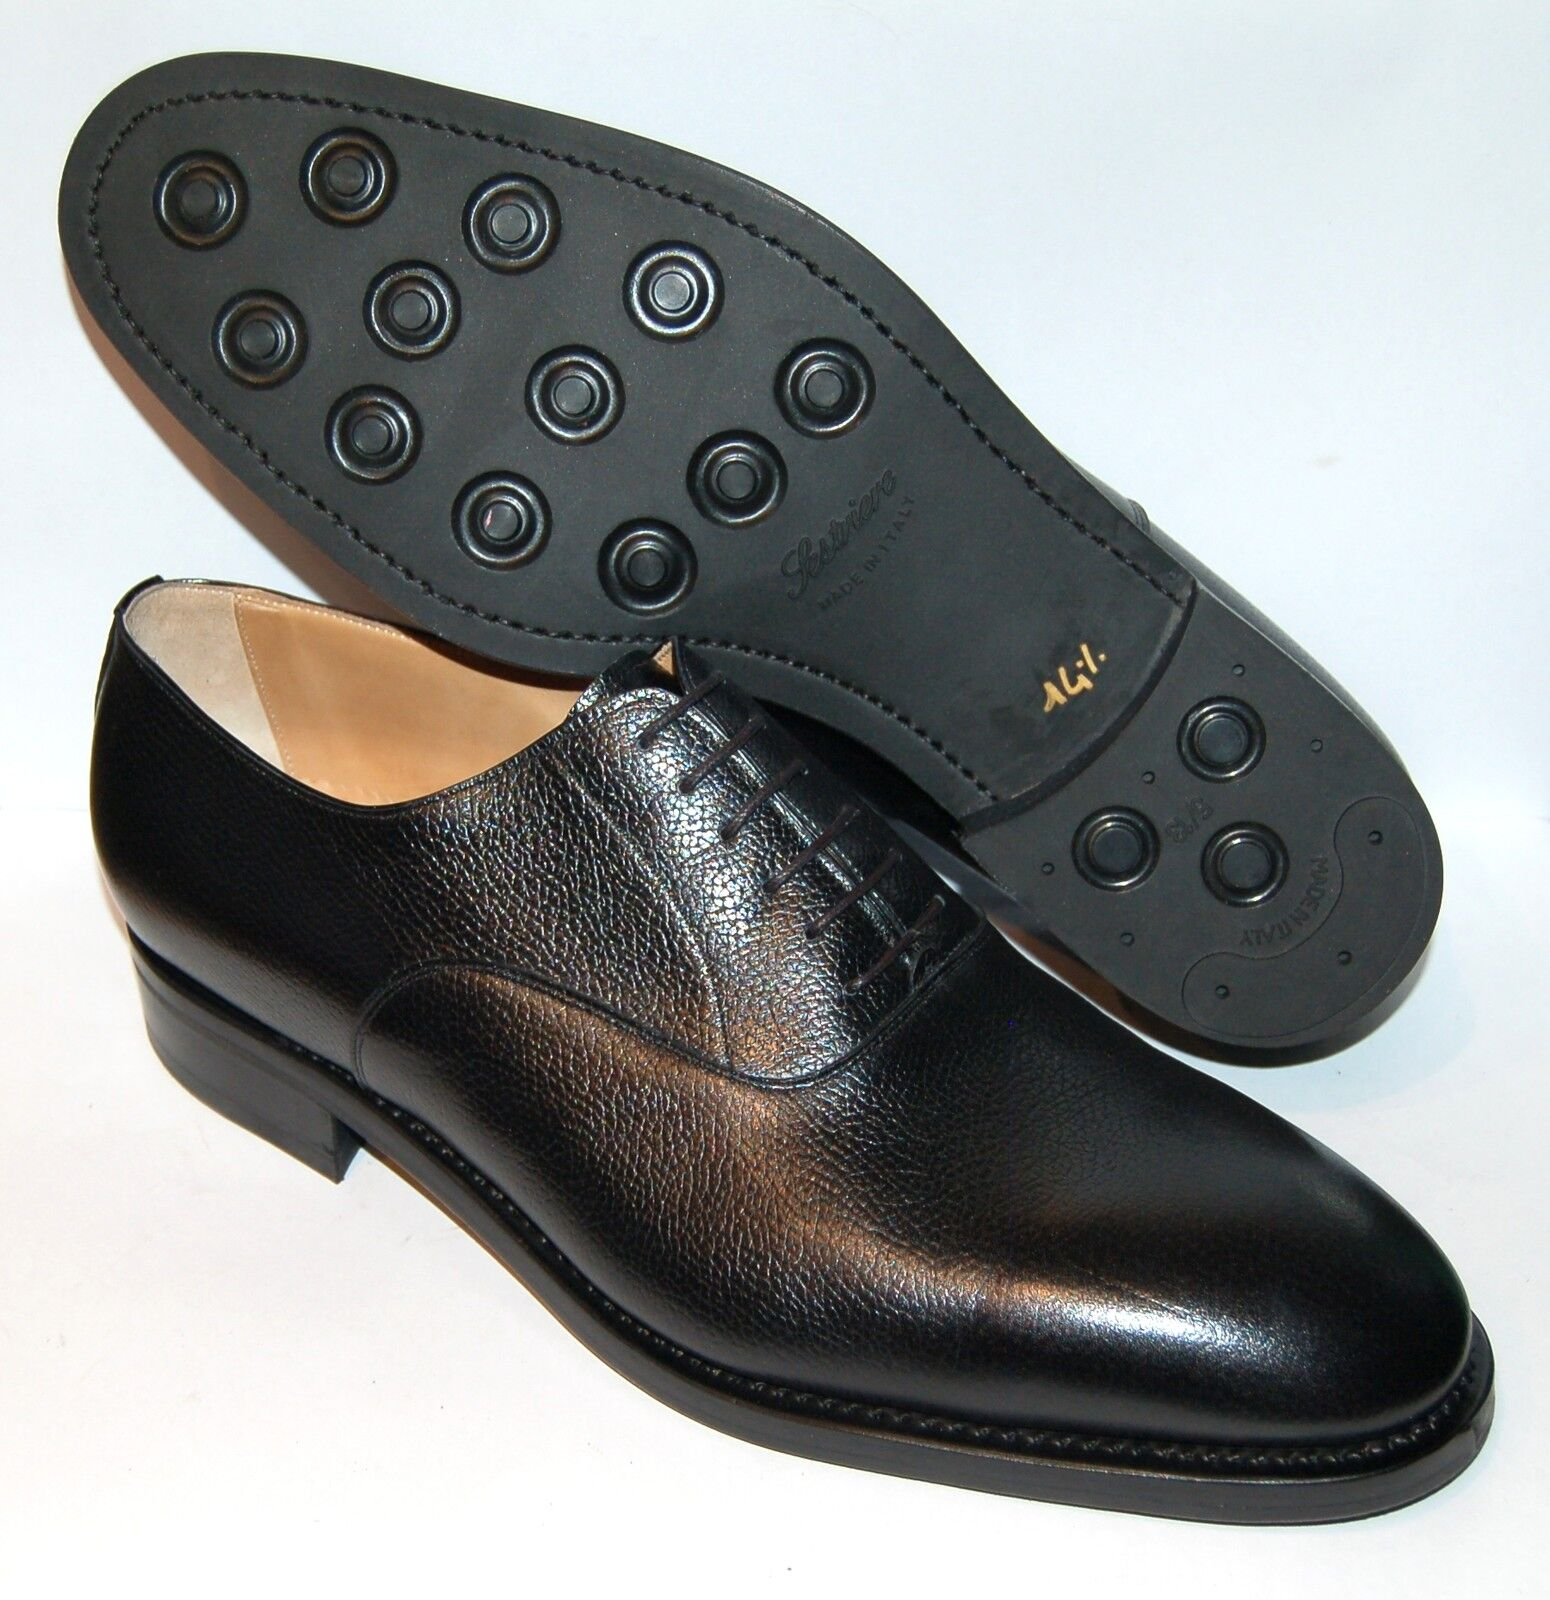 UOMO - PLANE OXFORD - 14½ eu - BLACK CALF- LEATHER SOLE + SESTRIERE RUBBER SOLE